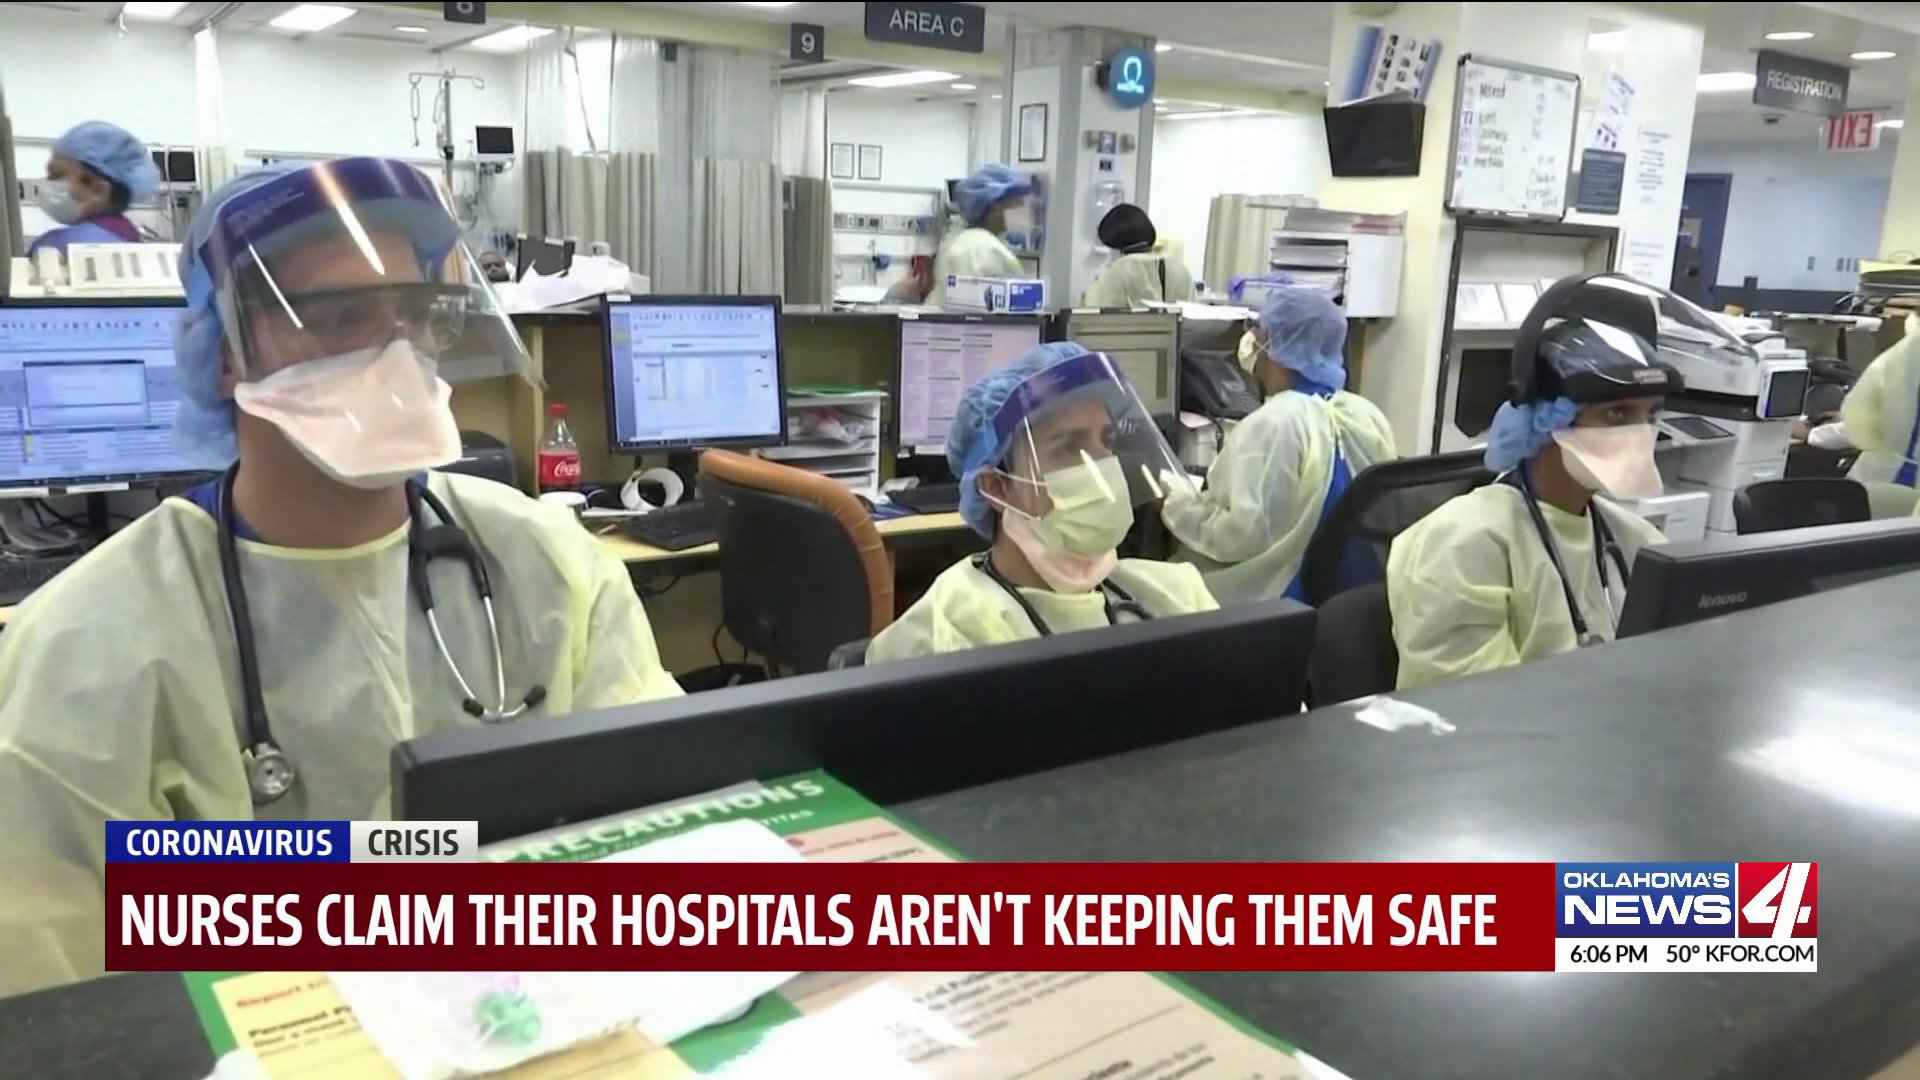 Doctors and nurses wearing ppe